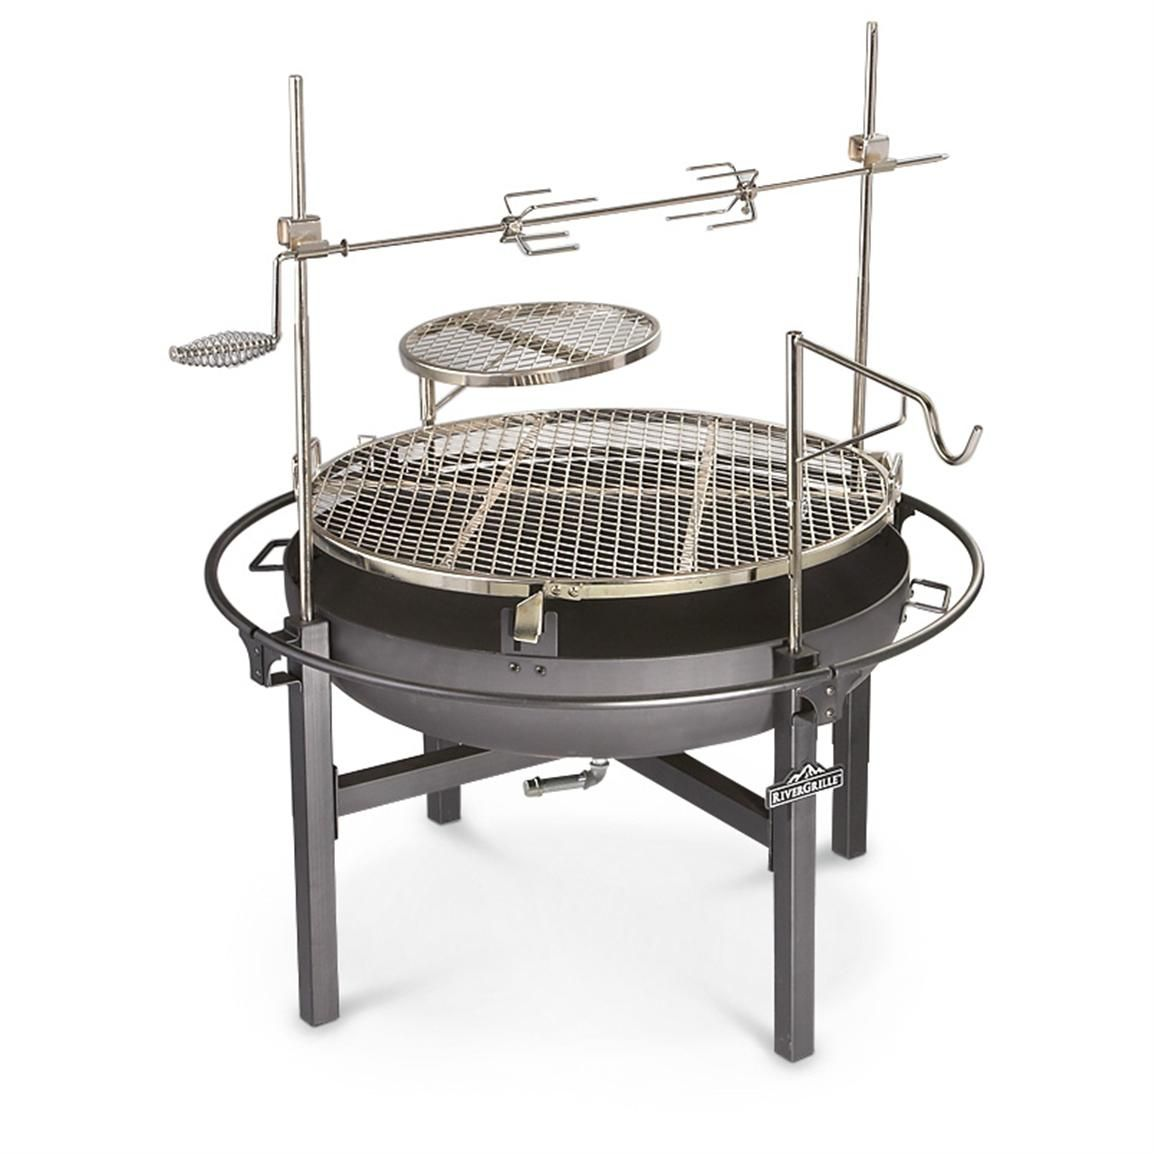 Cowboy Fire Pit Rotisserie Grill 282386 Stoves At Sportsman S Guide Fire Pit Rotisserie Cowboy Fire Pit Fire Pit Grill